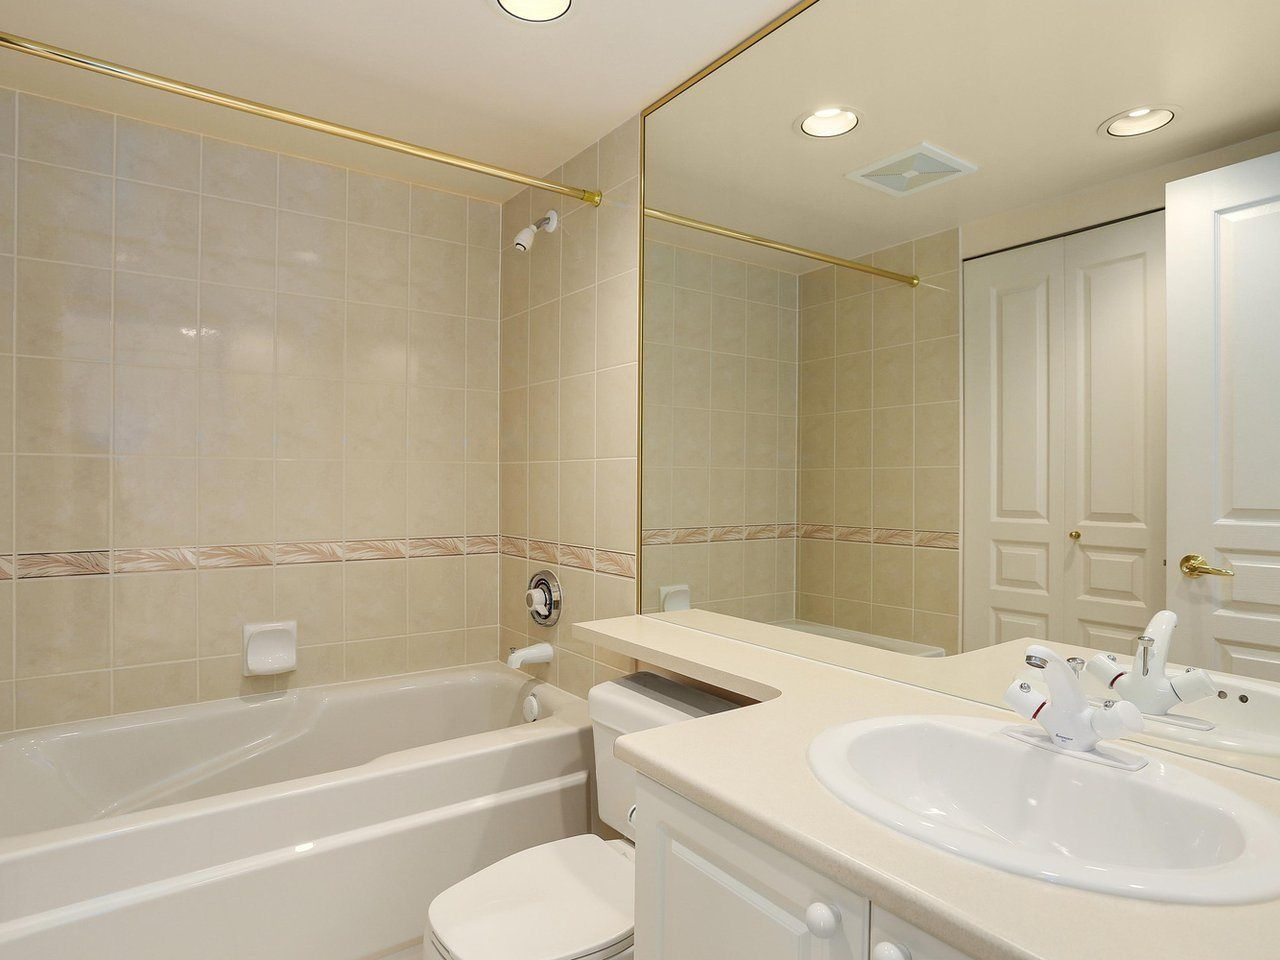 """Photo 13: Photos: 1704 5775 HAMPTON Place in Vancouver: University VW Condo for sale in """"CHATHAM"""" (Vancouver West)  : MLS®# R2196974"""